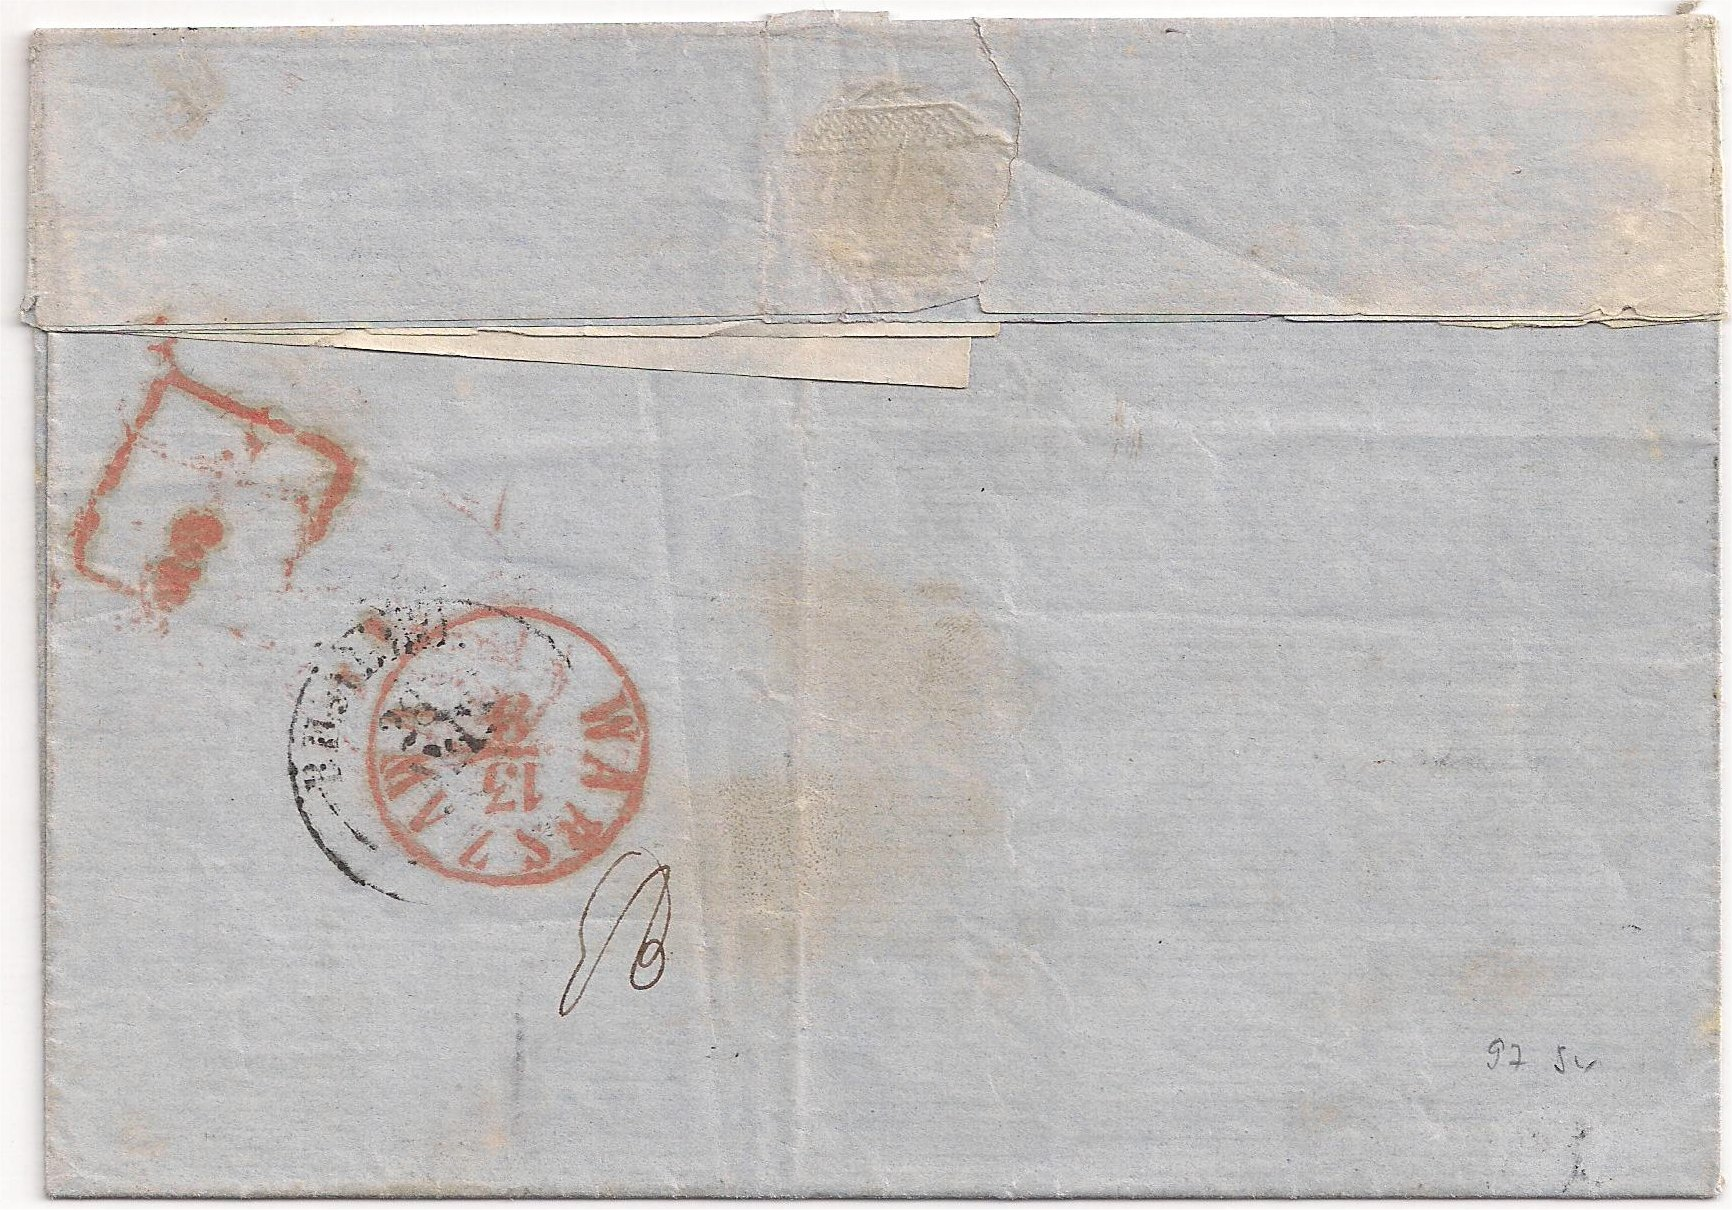 On the backside the departure postmark of Vilnius and the arrival postmark of Warsaw.